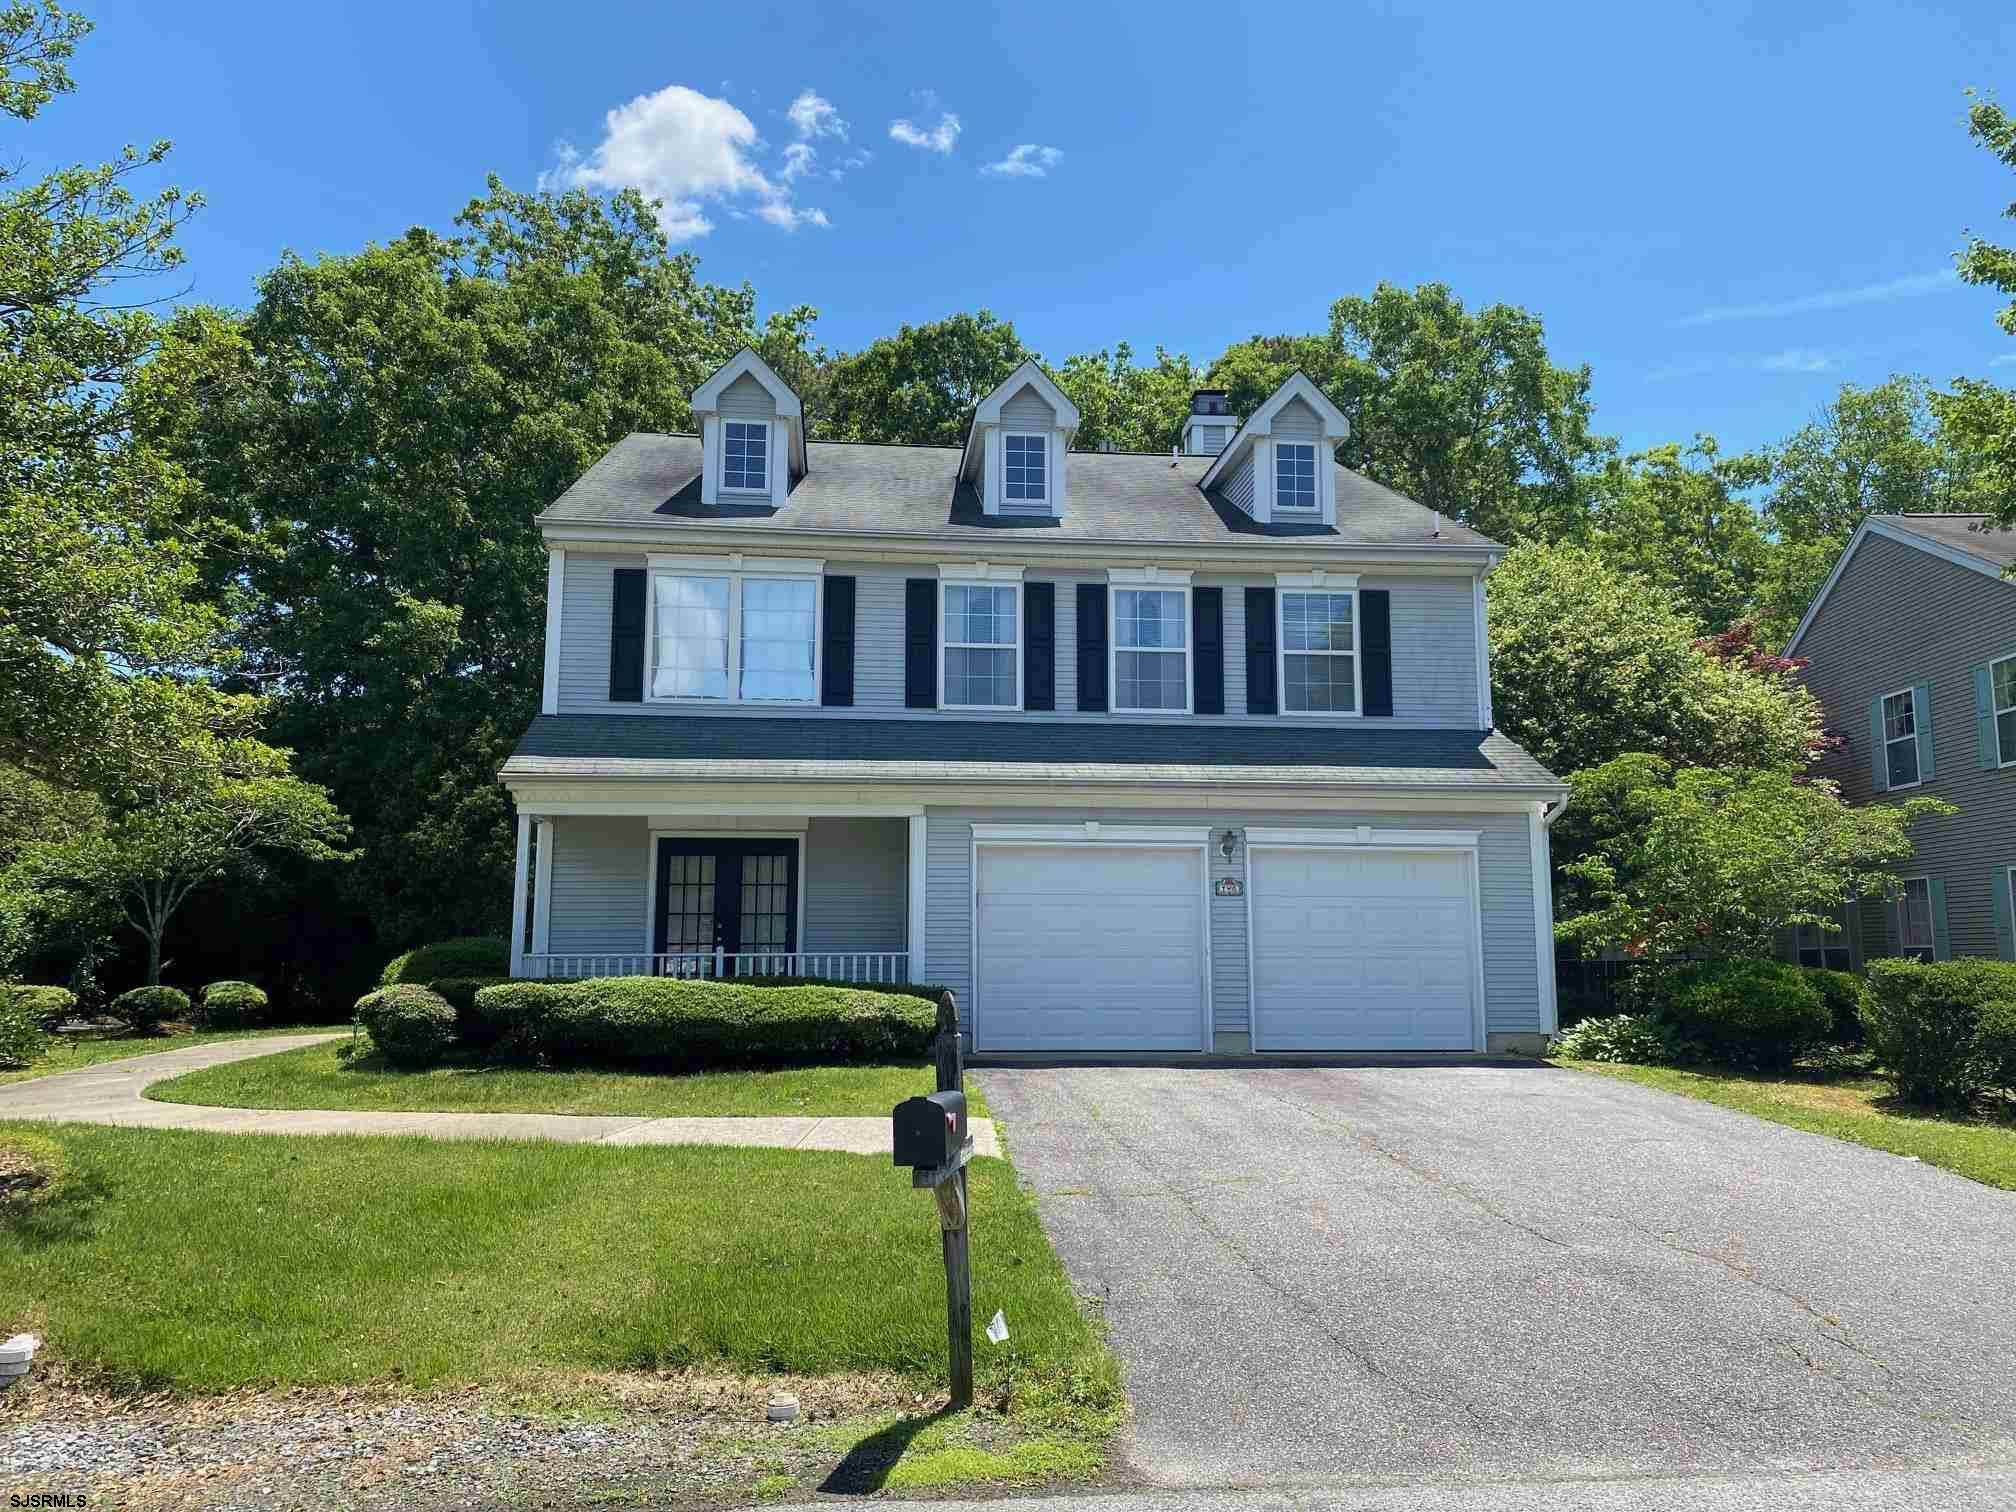 Don't miss this well-maintained 4br/2.5ba colonial with 2 car garage in desirable Moss Mill Hollow!